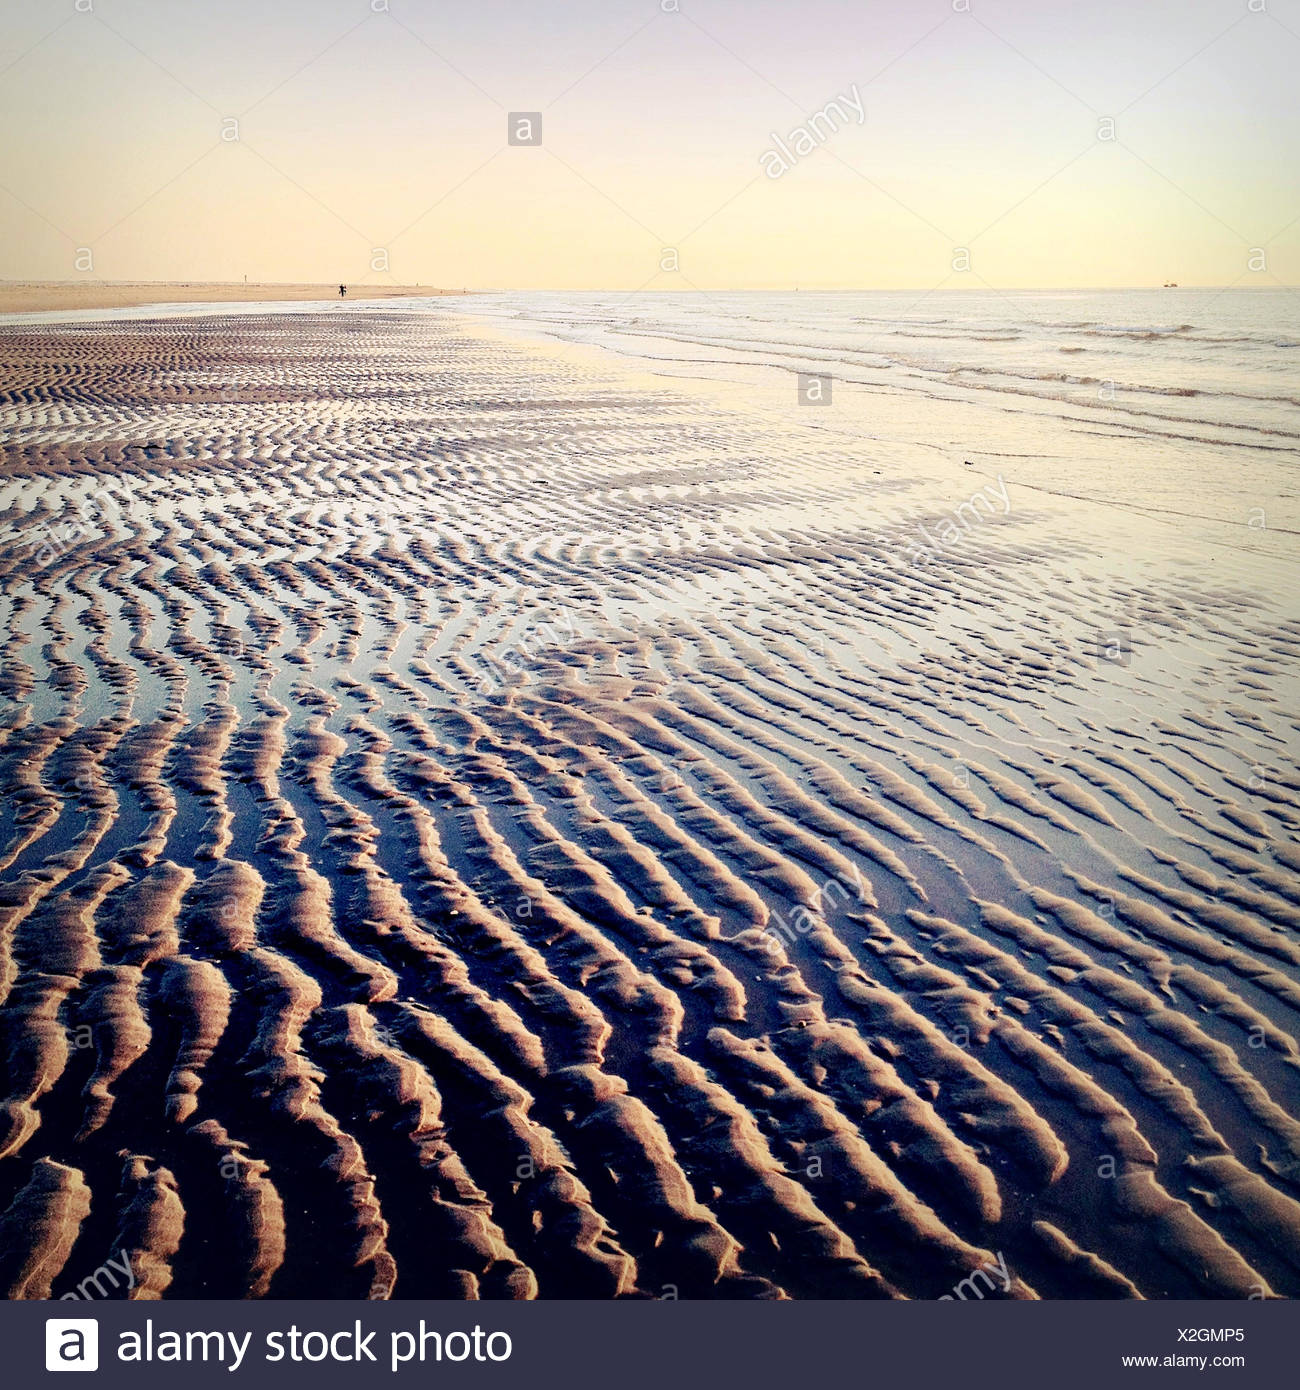 Seascape and sand on beach - Stock Image